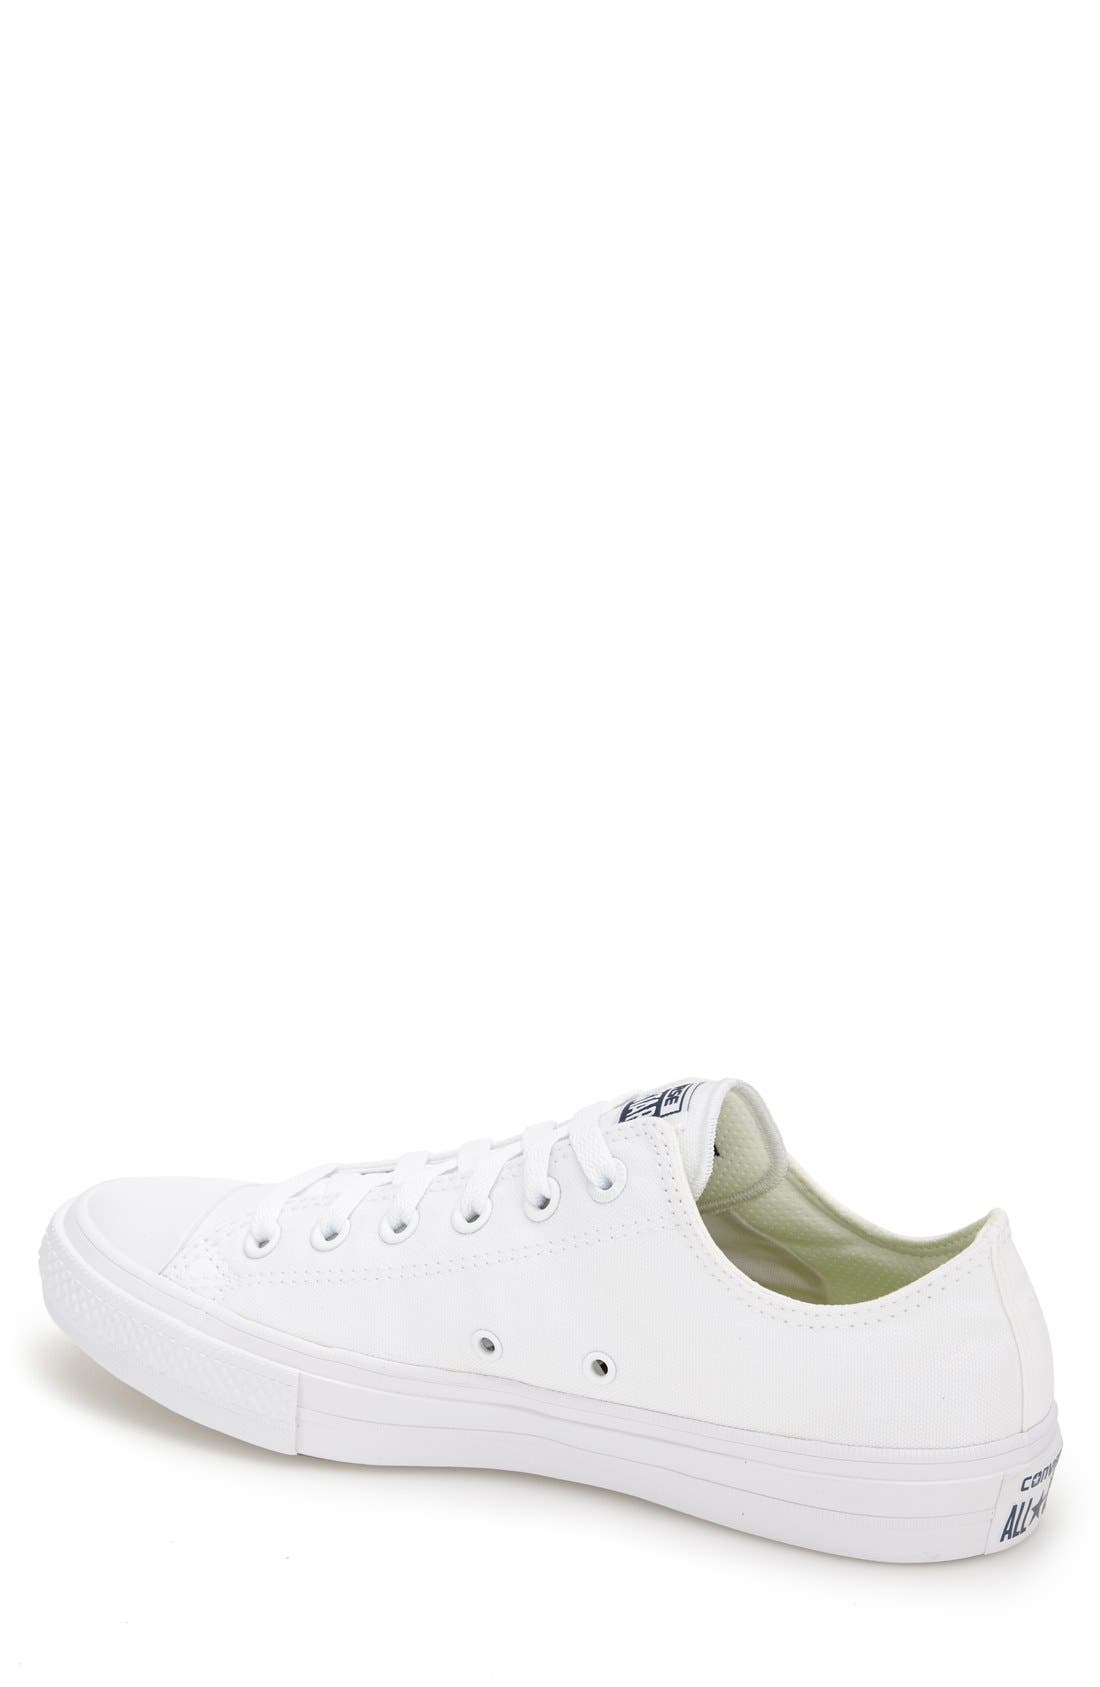 Chuck Taylor<sup>®</sup> All Star<sup>®</sup> II 'Ox' Canvas Sneaker,                             Alternate thumbnail 16, color,